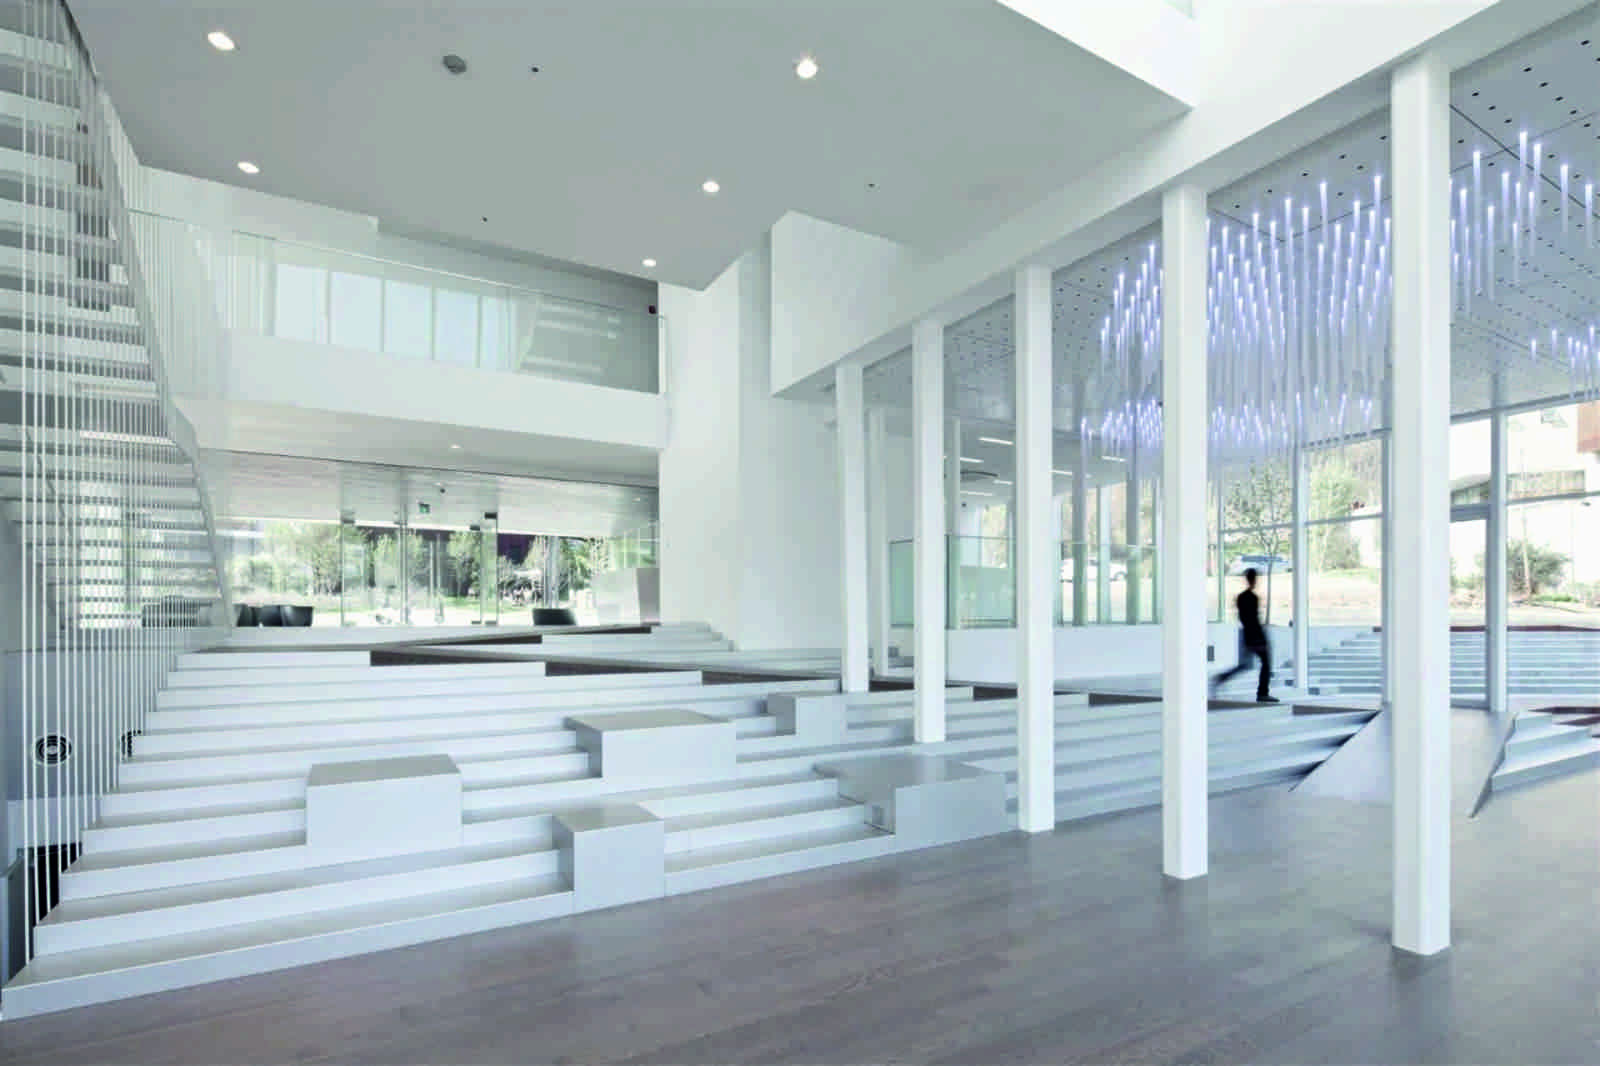 Gallery Space Design WHITE BLOCK GALLERY BY...